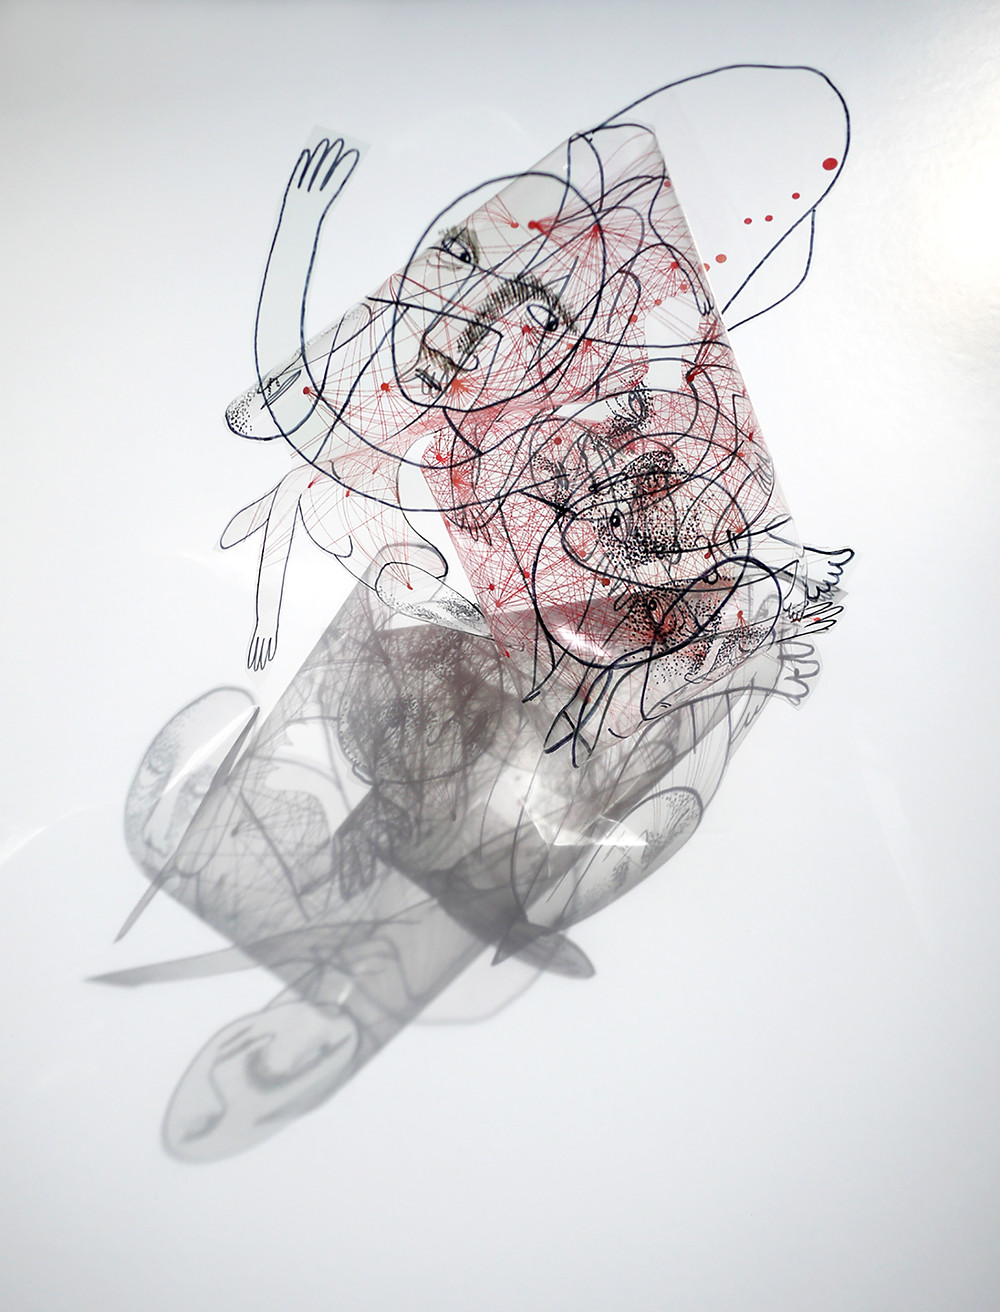 Web (2013). Screenprint on acrylic sheet, bent and folded. Photographed with shadow. Approx. 18 x 15 x 21cm